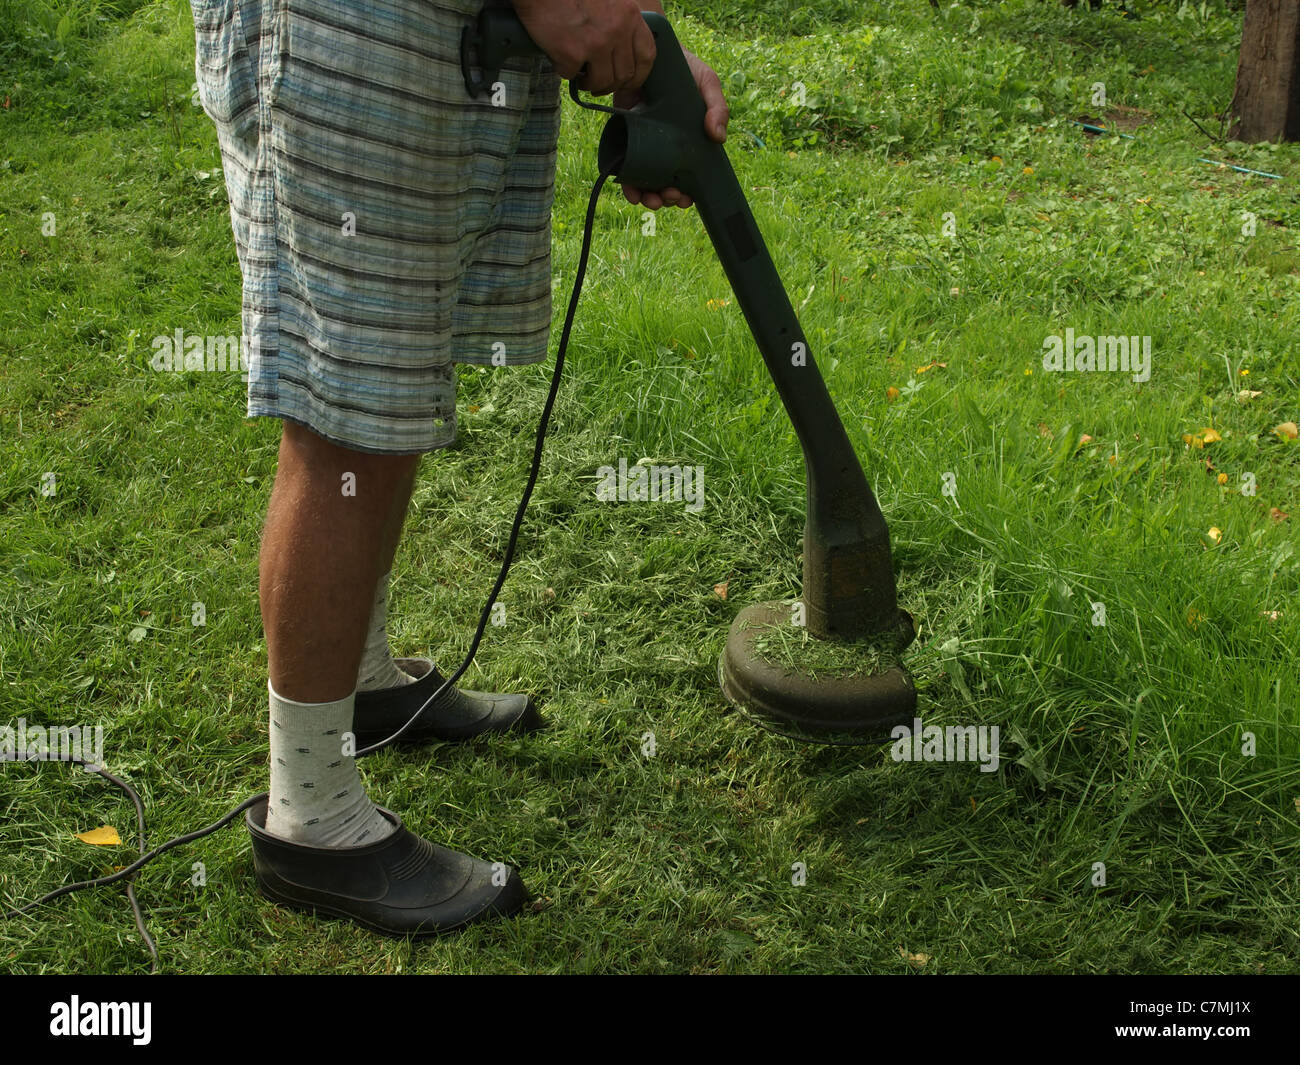 Man mowed the grass in garden - Stock Image